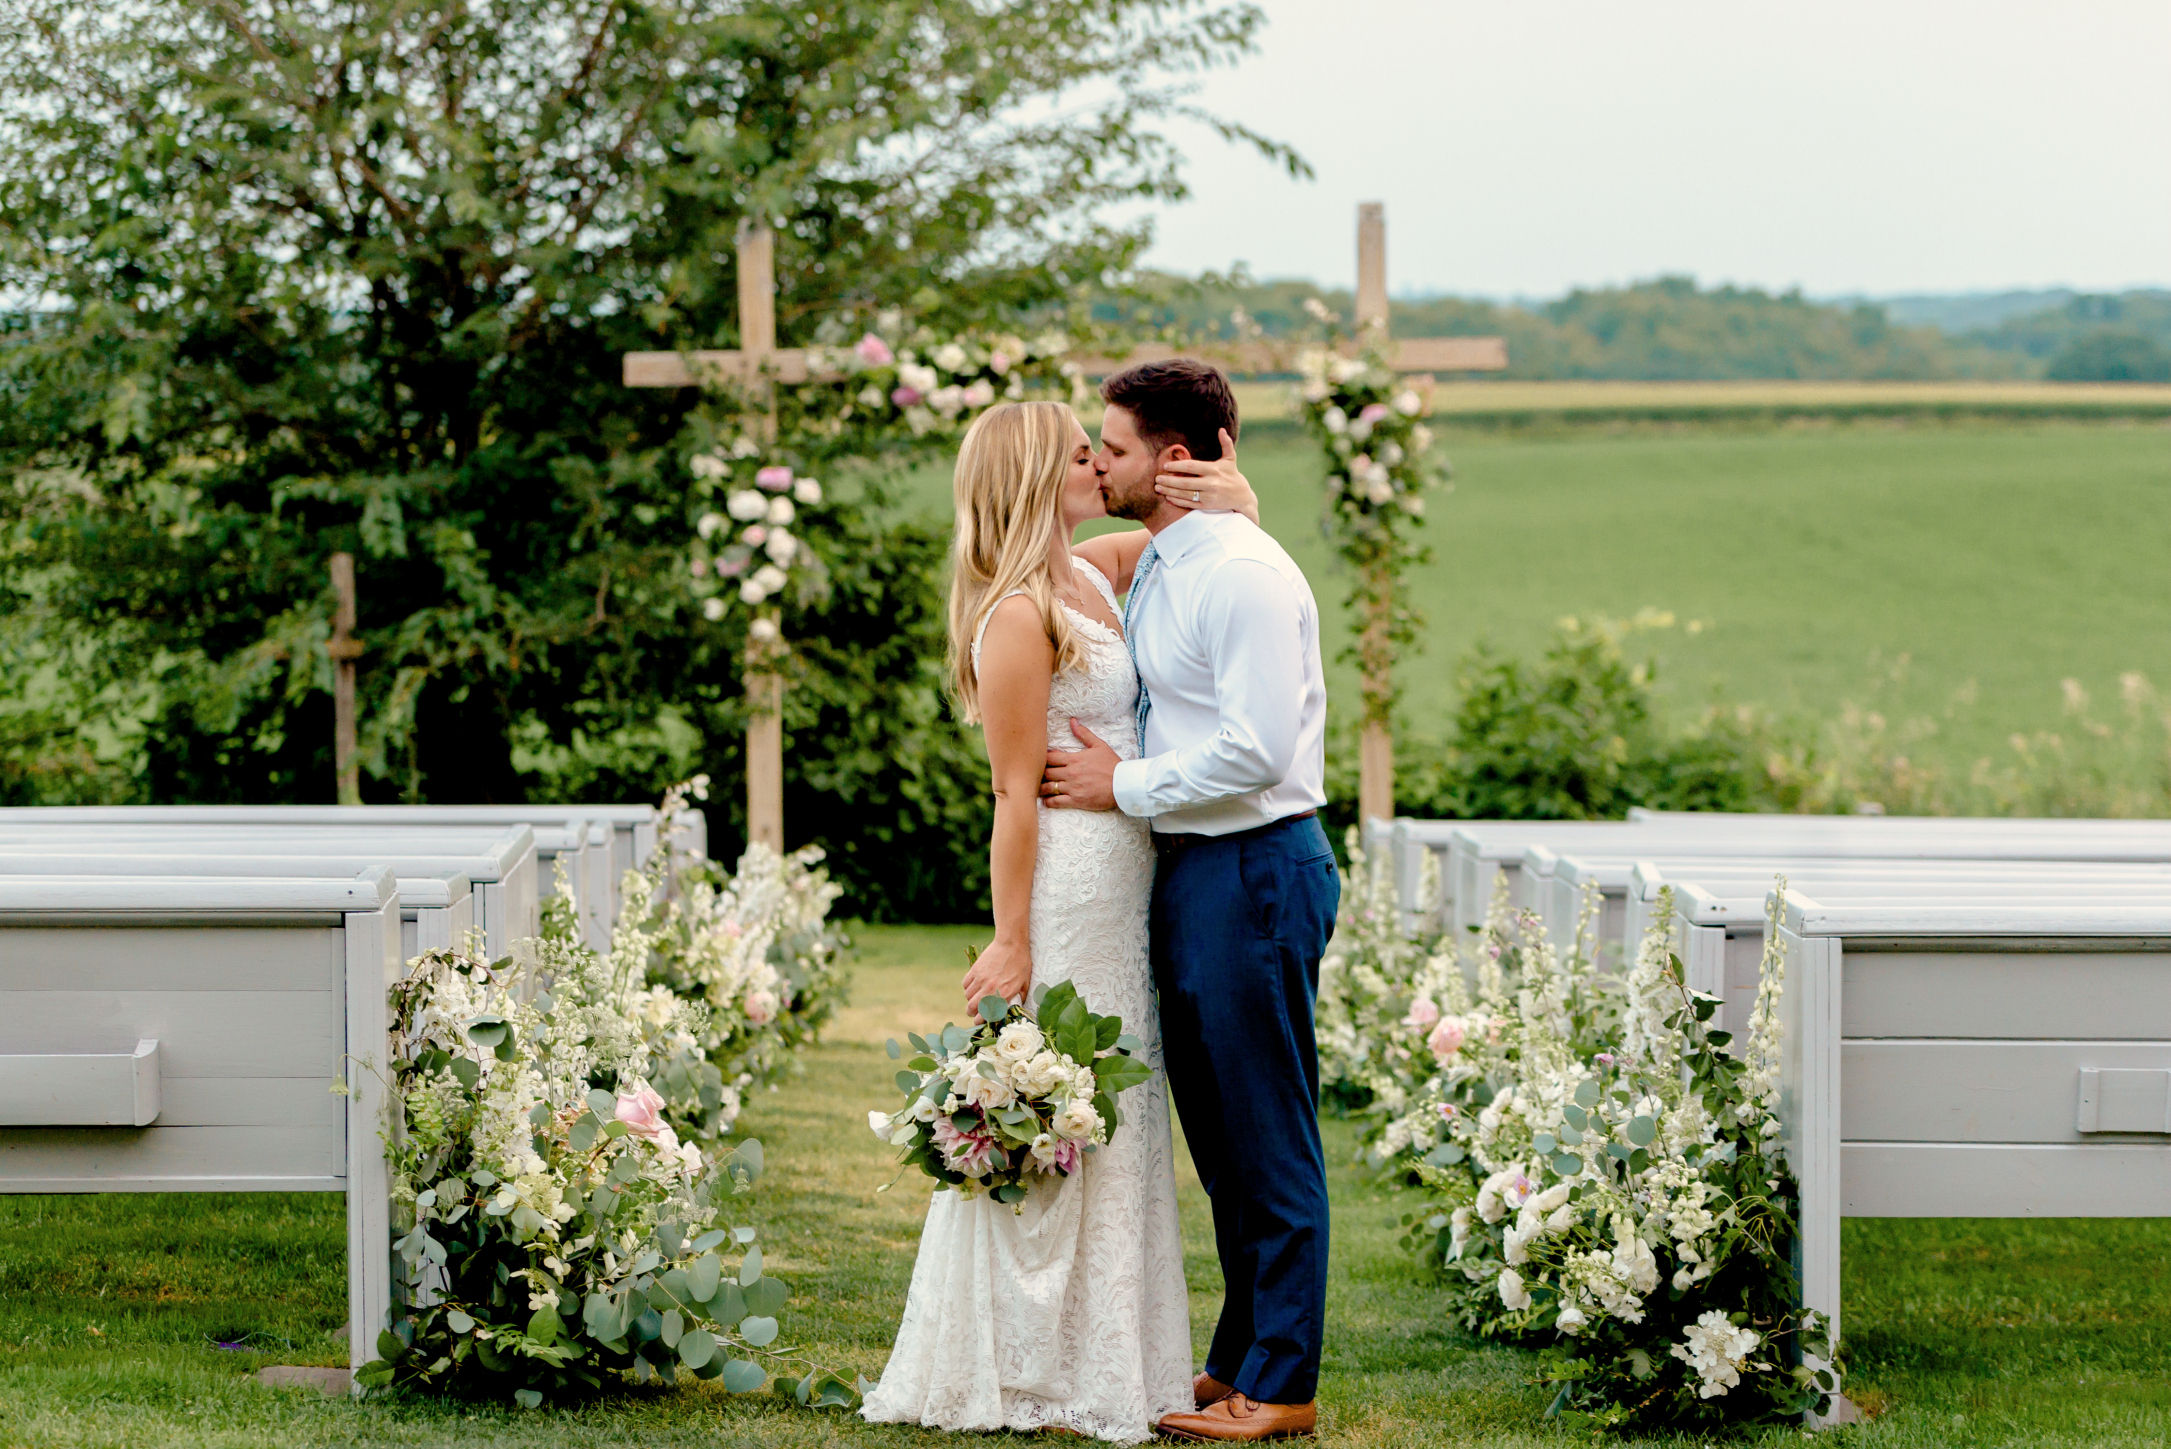 Legacy Hill Farm Wedding - Most Romantic Wedding Photos - Barn Wedding Outdoor Ceremony - MN Wedding Photographer